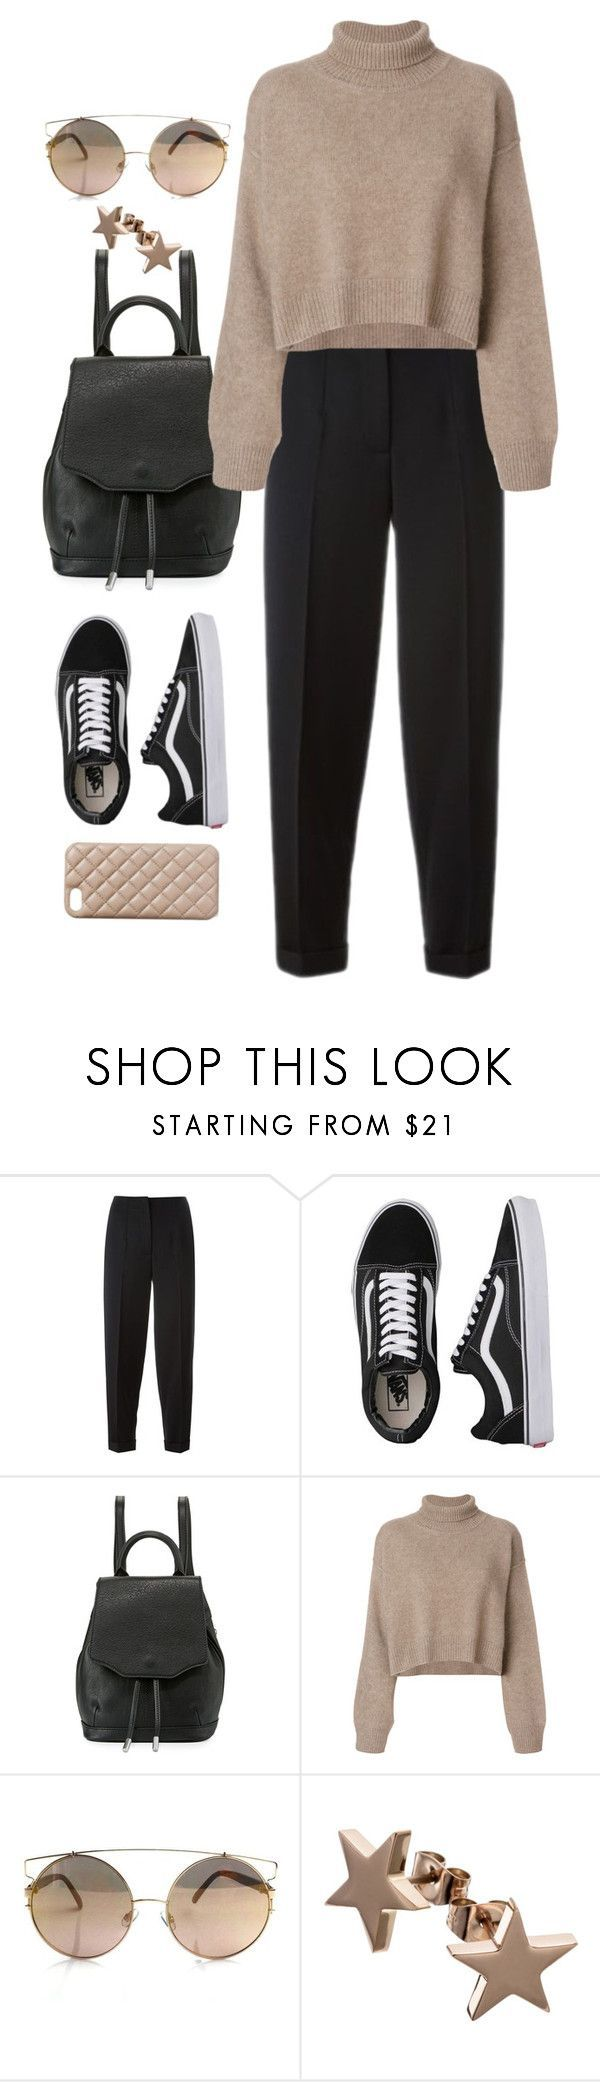 """Sin título #4009"" by beel94 ❤ liked on Polyvore featuring Alexander McQueen, Vans, rag & bone, Rejina Pyo and The Case Factory"